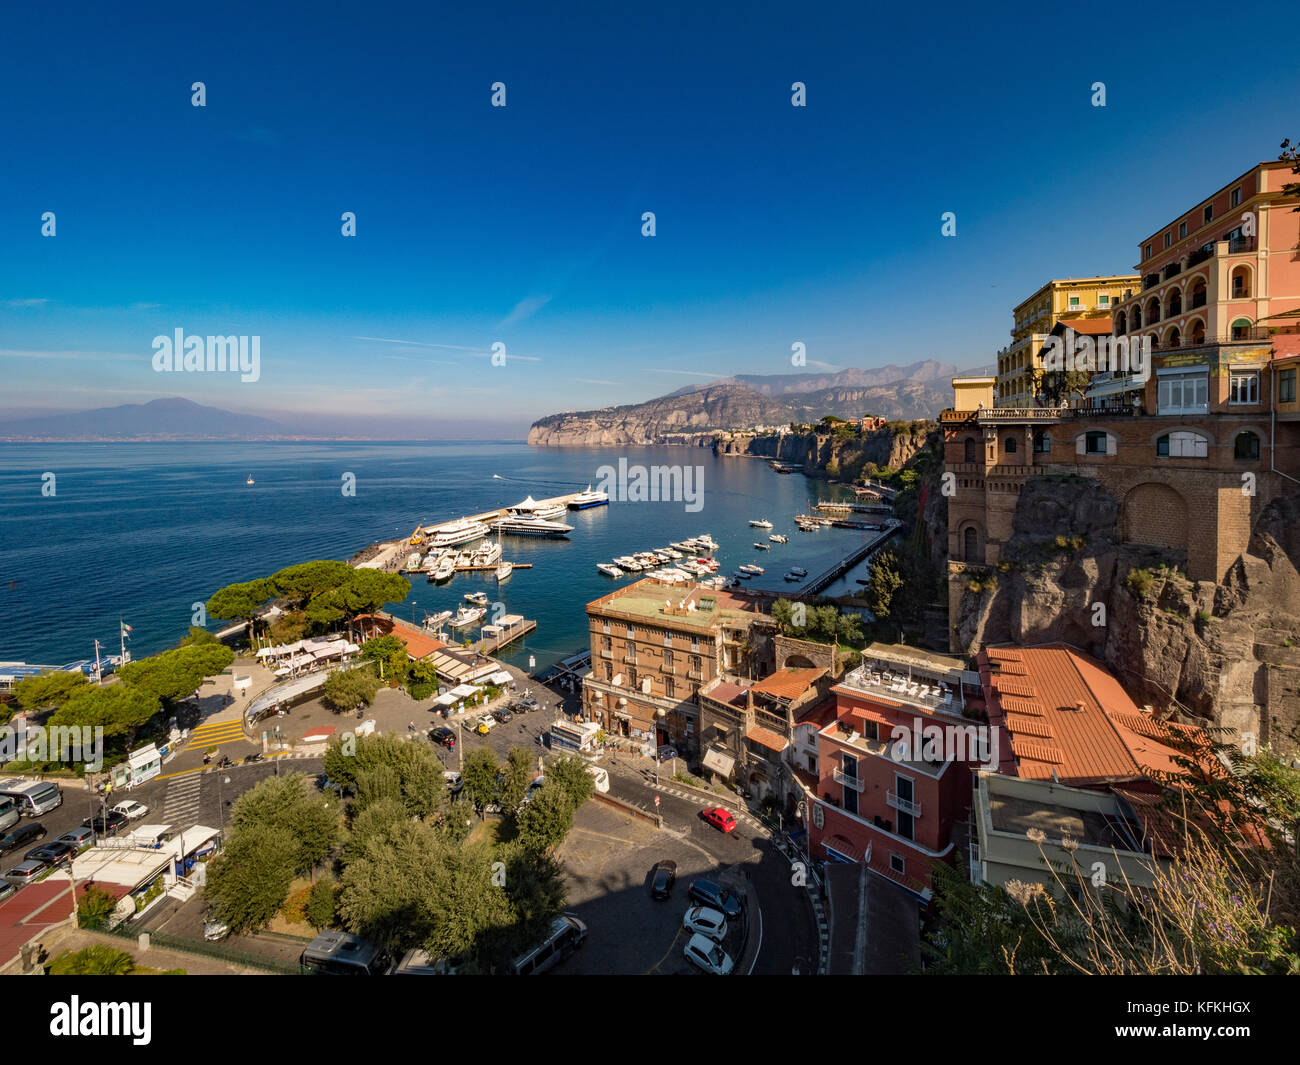 Moored boats in Marina Piccola, seen from an elevated view, with Mount Vesuvius  in the distance. Tyrrhenian Sea, - Stock Image